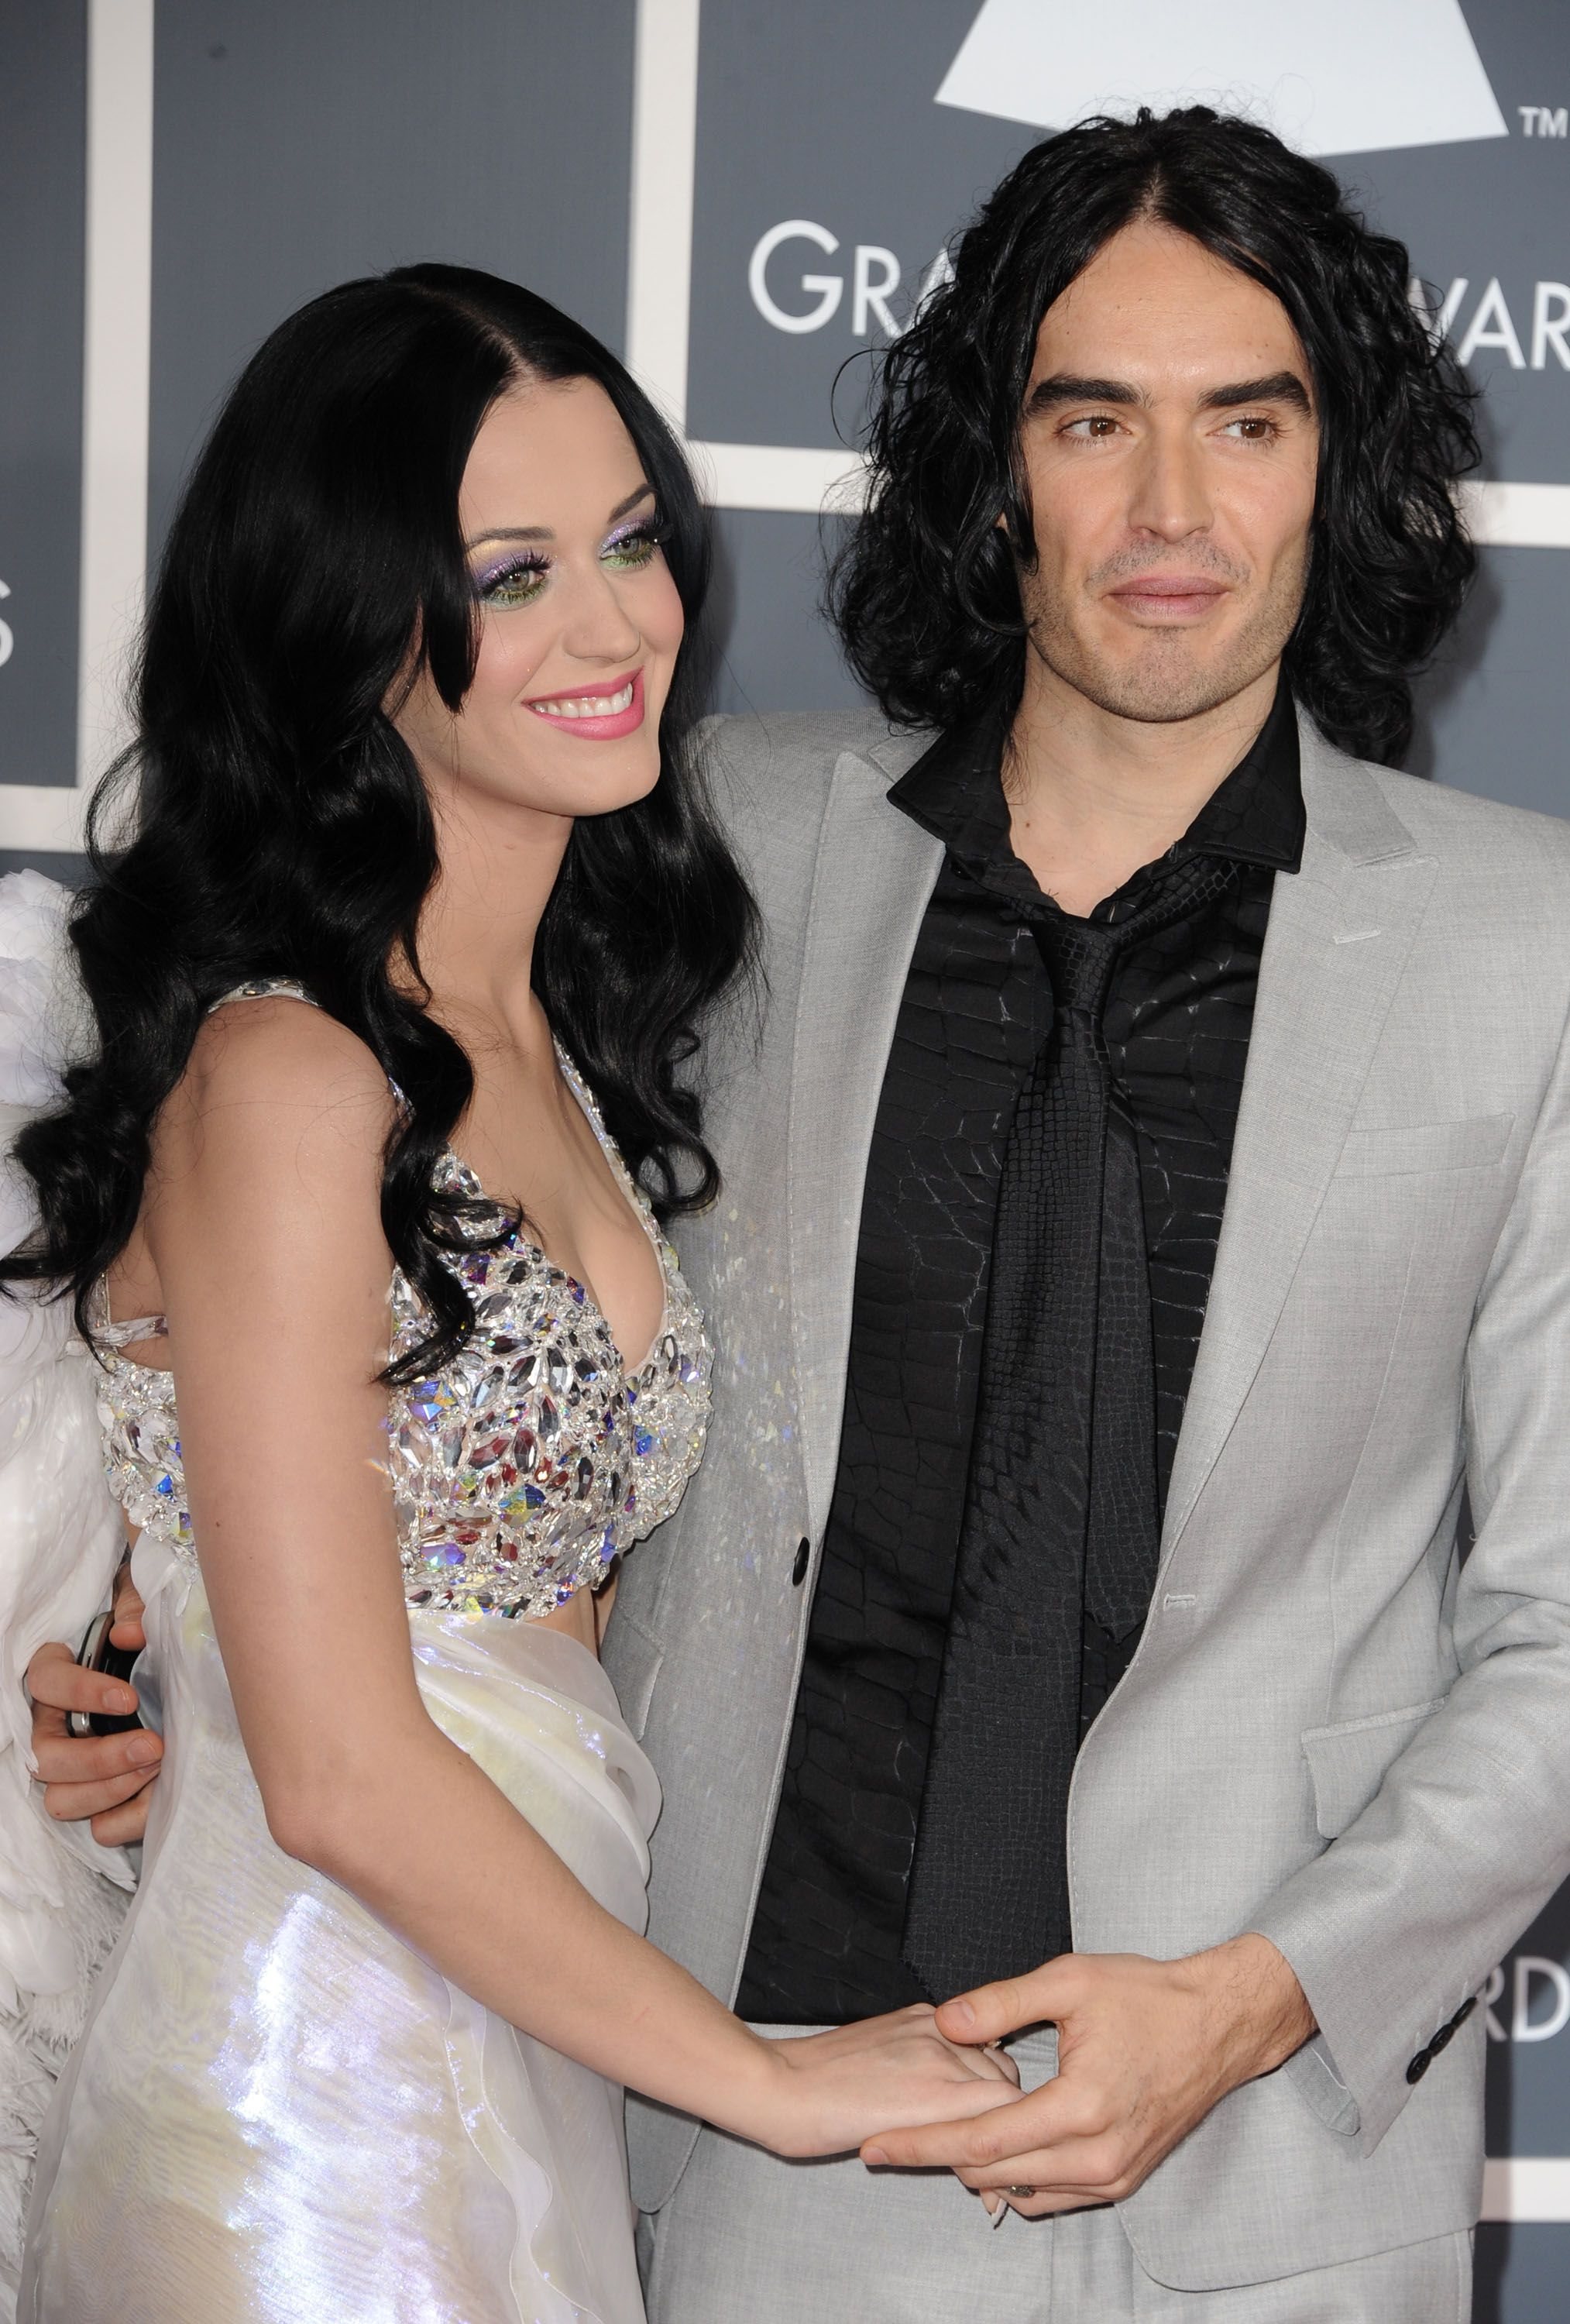 Katy Perry and Russell Brand at the 53rd Annual Grammy Awards in 2011 in Los Angeles, California   Source: Getty Images